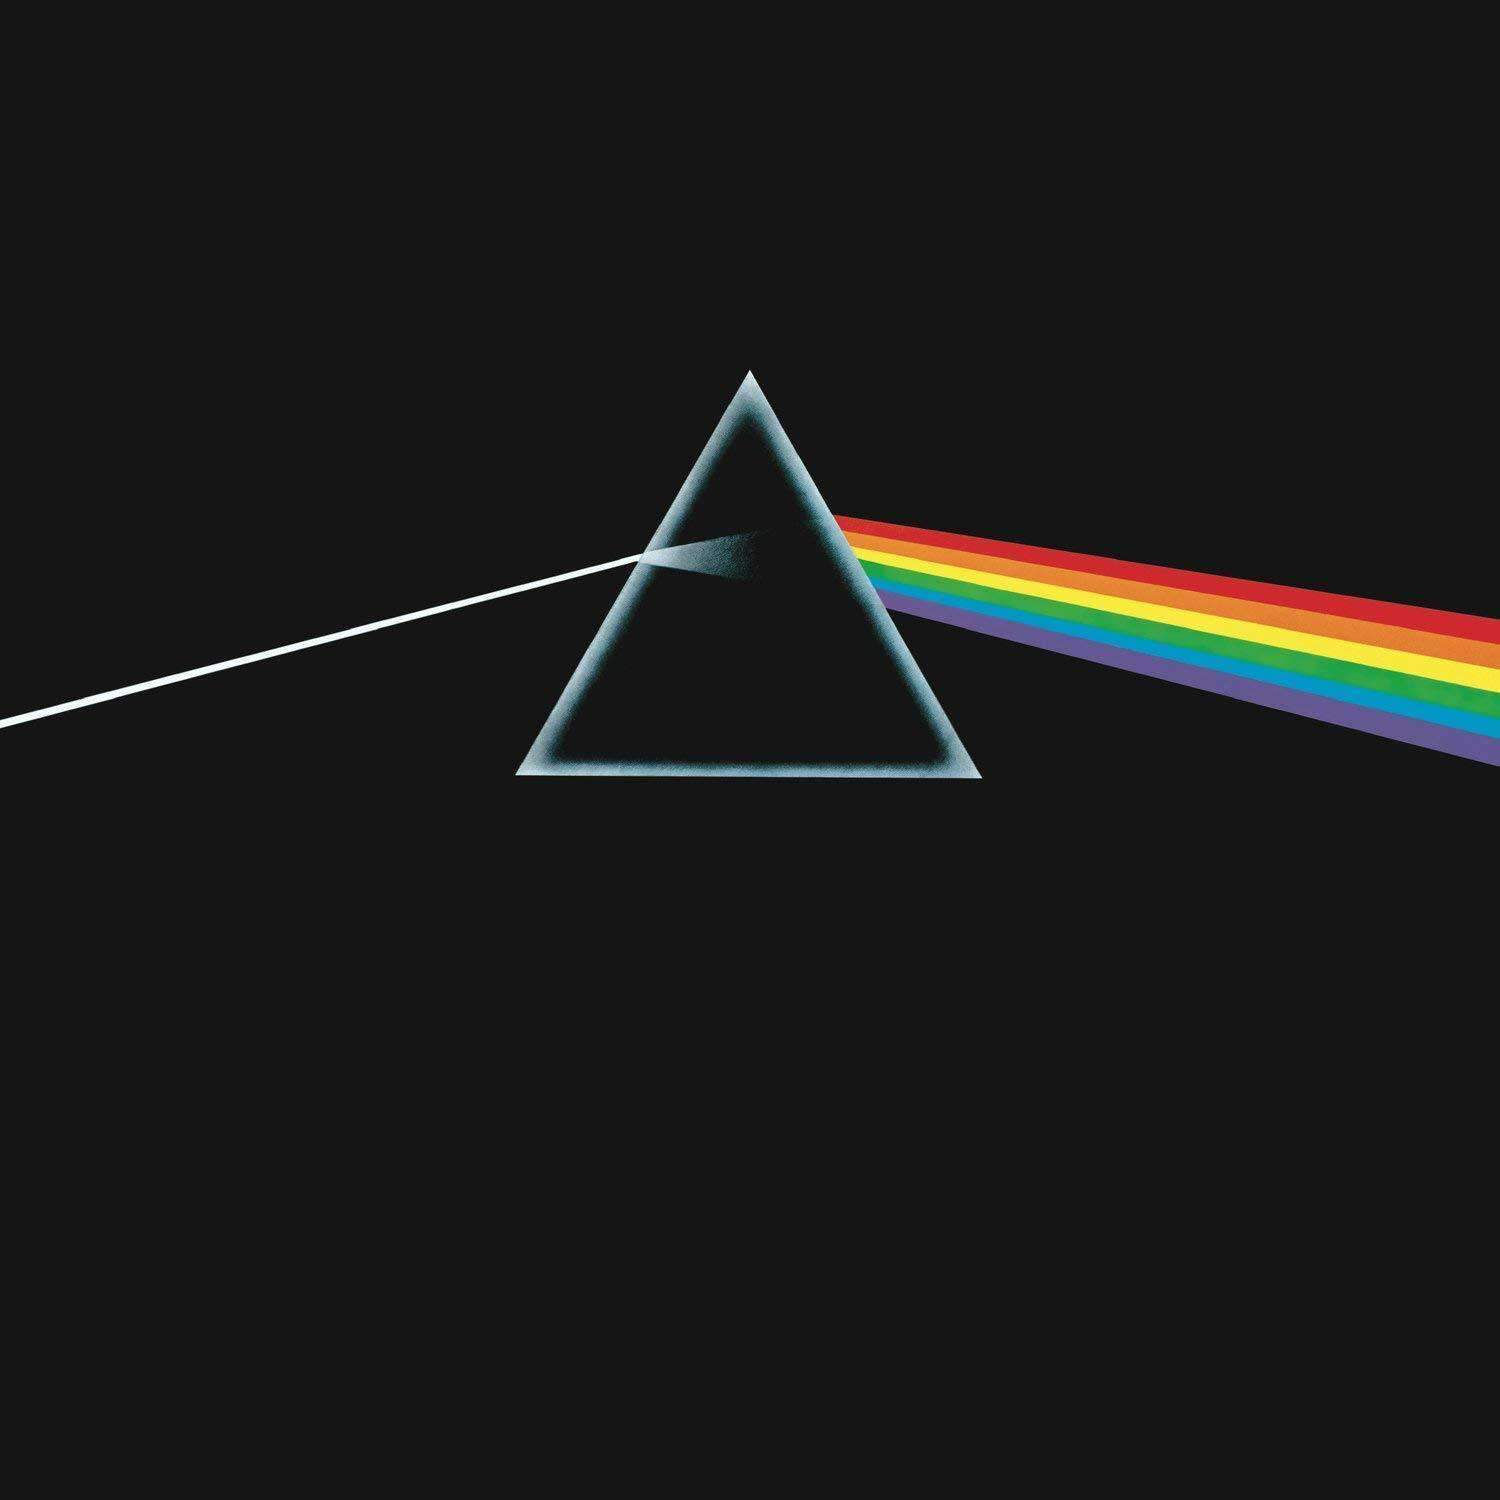 Pink Floyd - The Dark Side Of The Moon [LP] (180 Gram, 2016 version, stereo remastered)